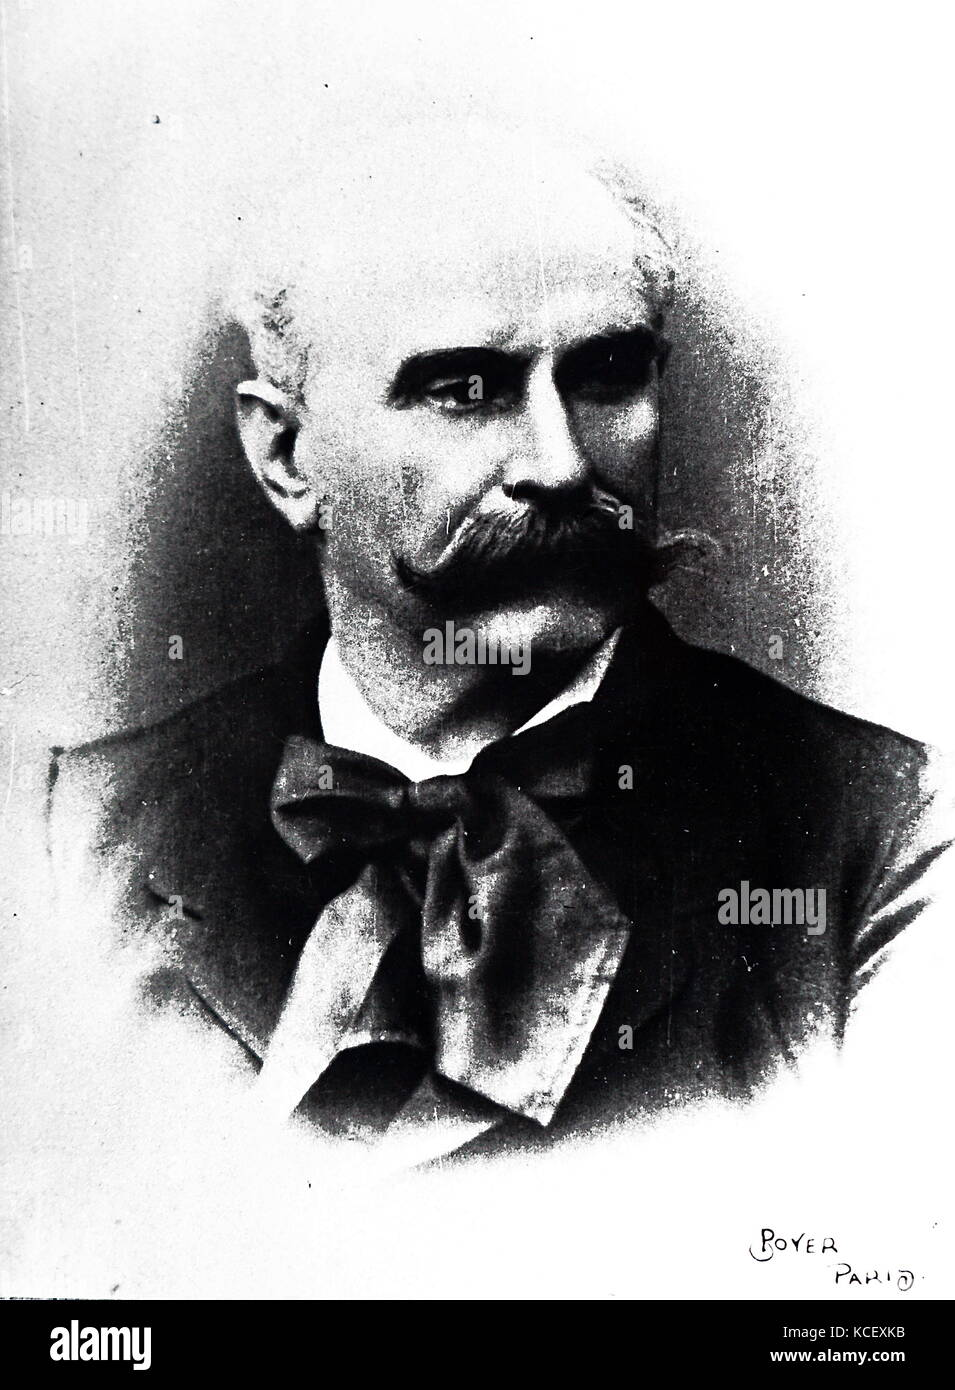 Photograph of an unknown French 19th century man with a large moustache. Dated 19th Century - Stock Image